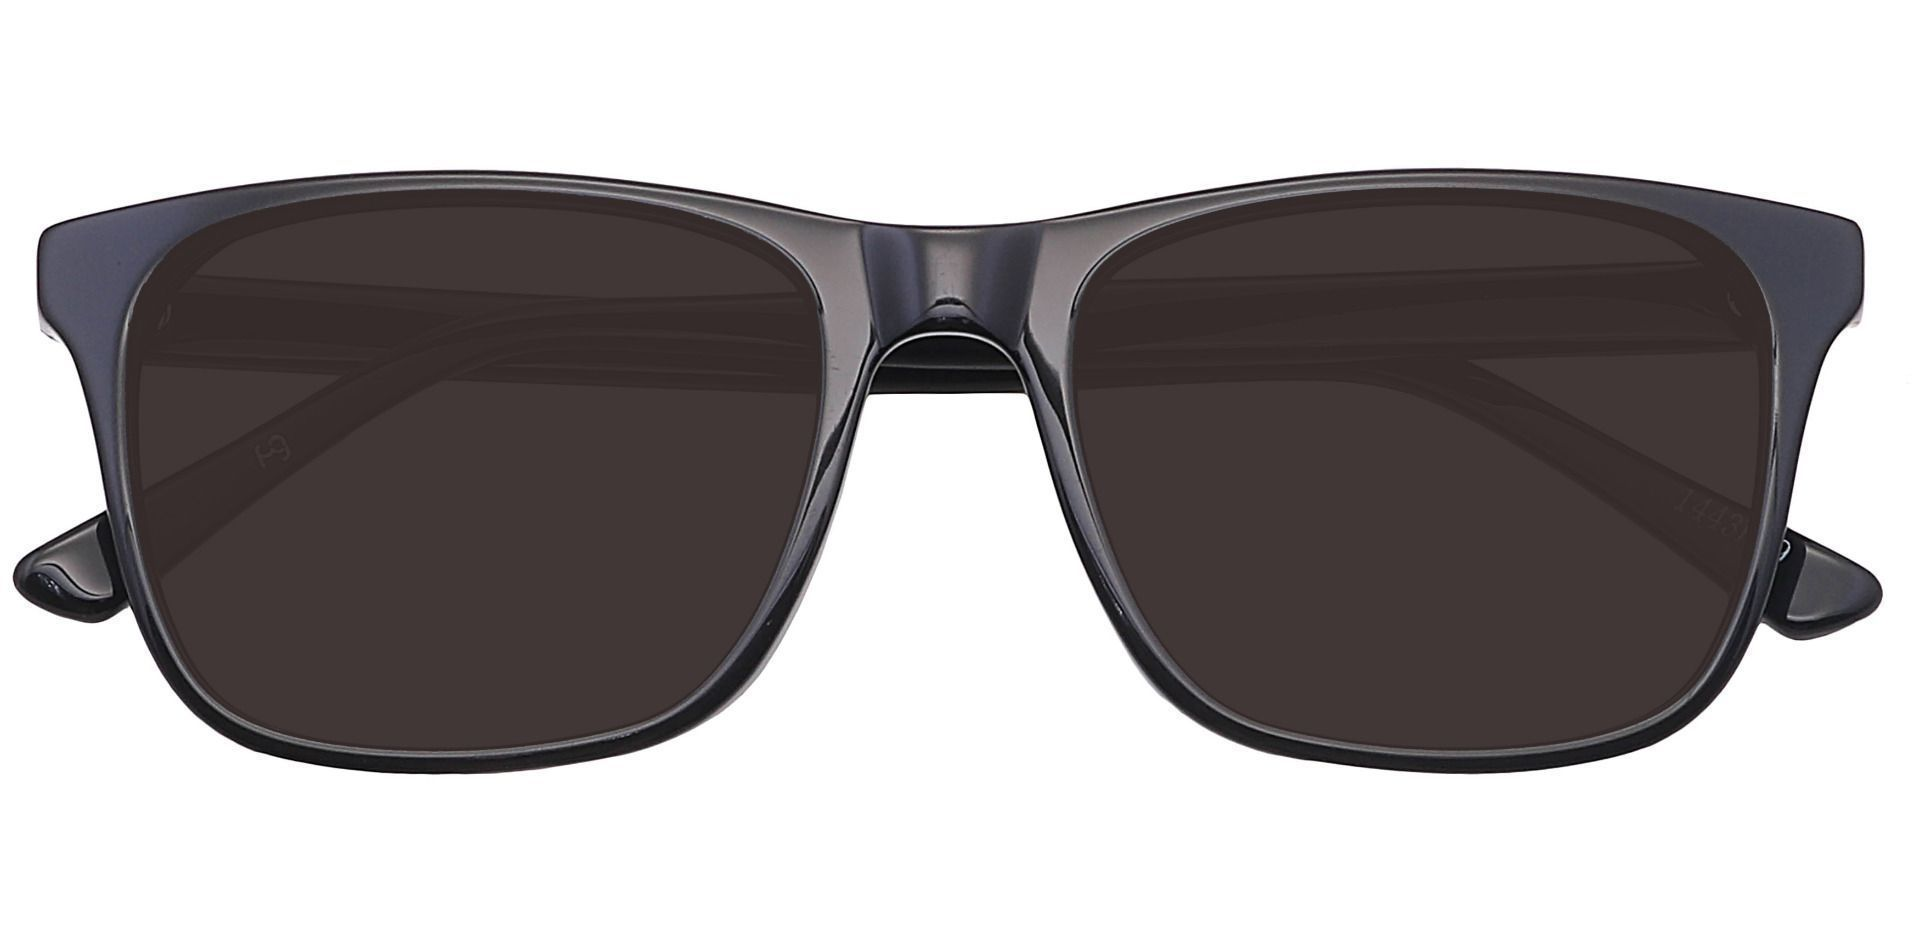 Cantina Square Prescription Sunglasses - Black Frame With Gray Lenses